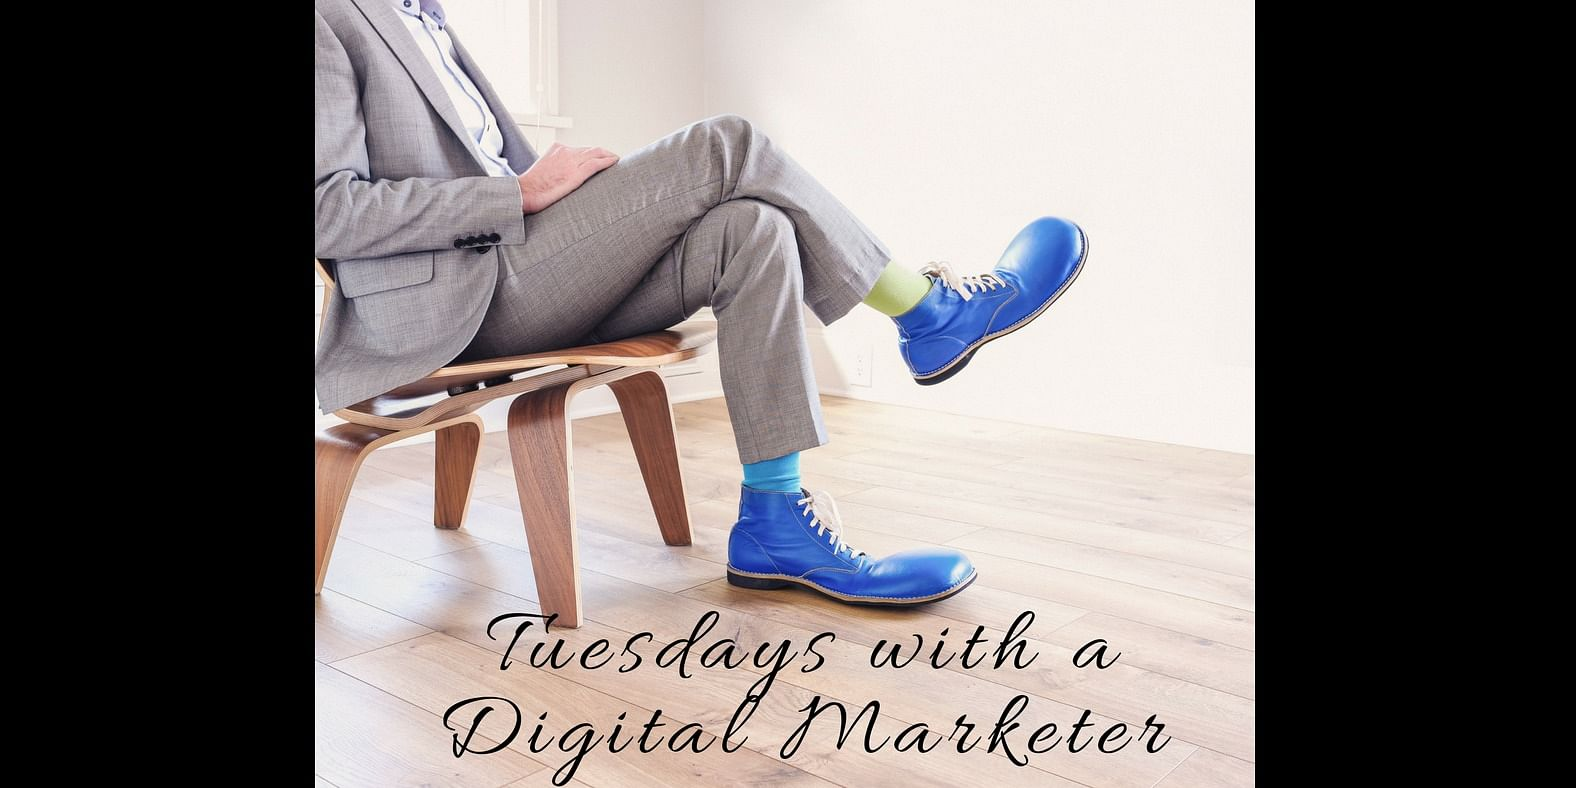 Tuesdays with a Digital Marketer